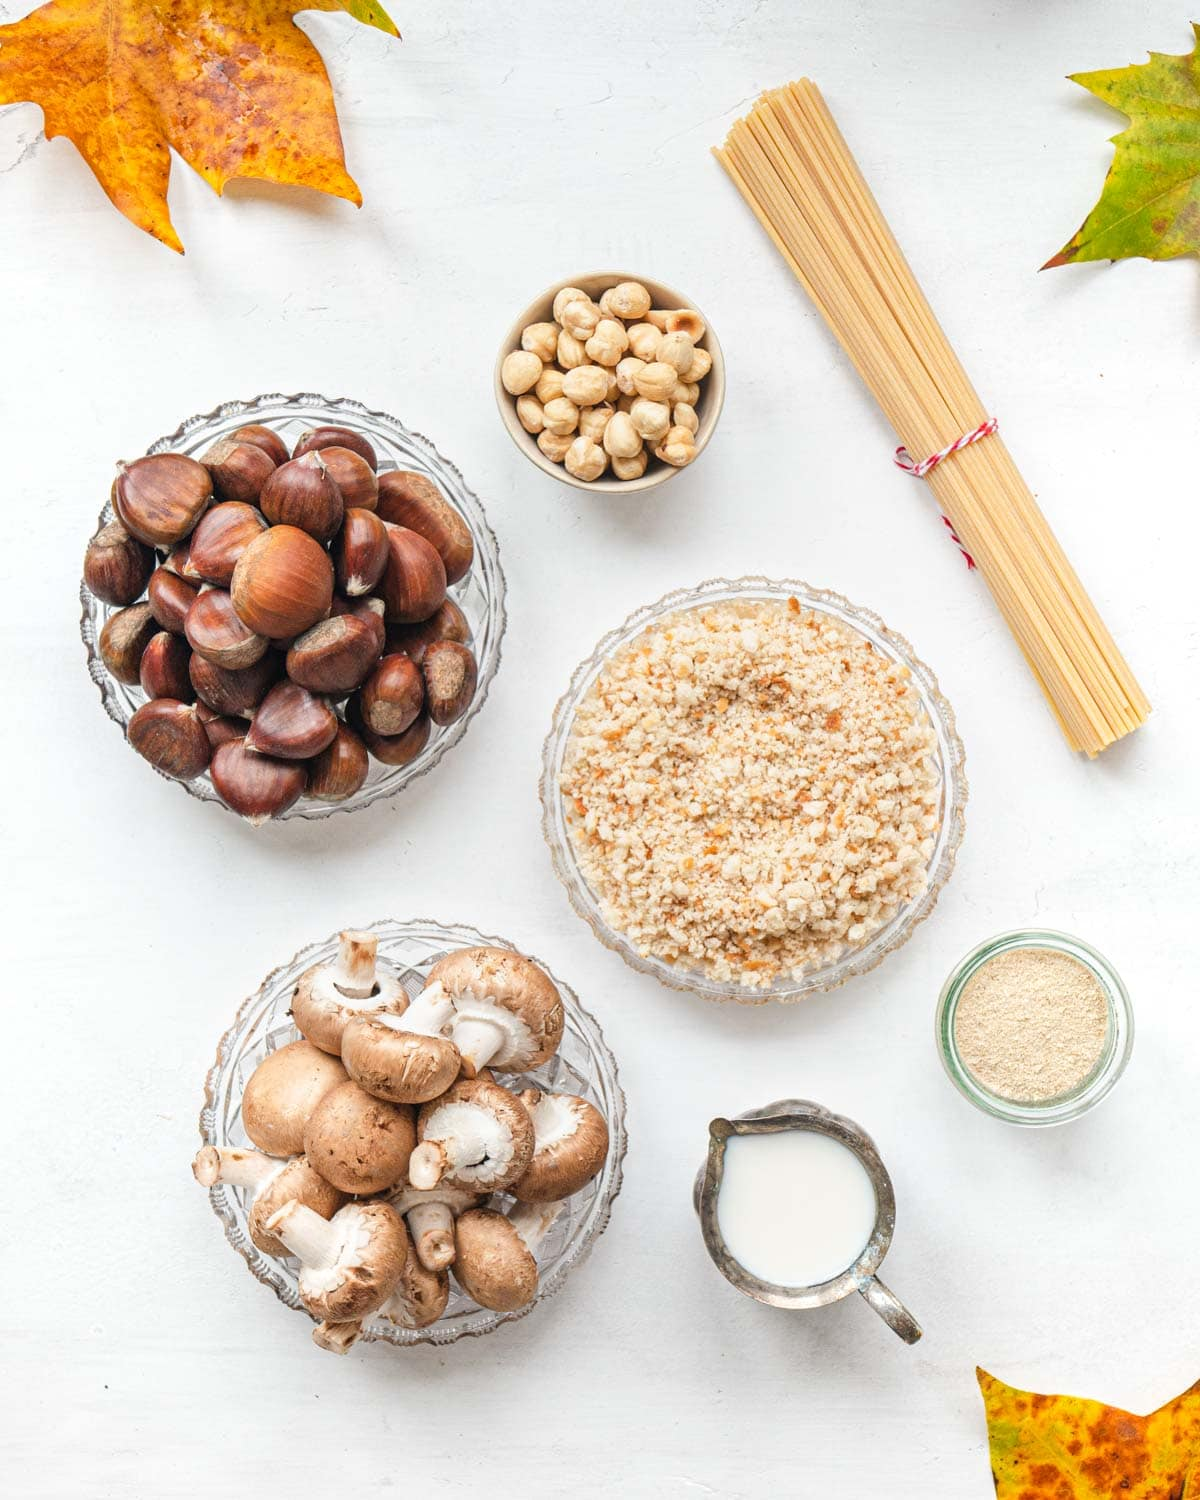 Ingredients for spaghetti with chestnut pesto